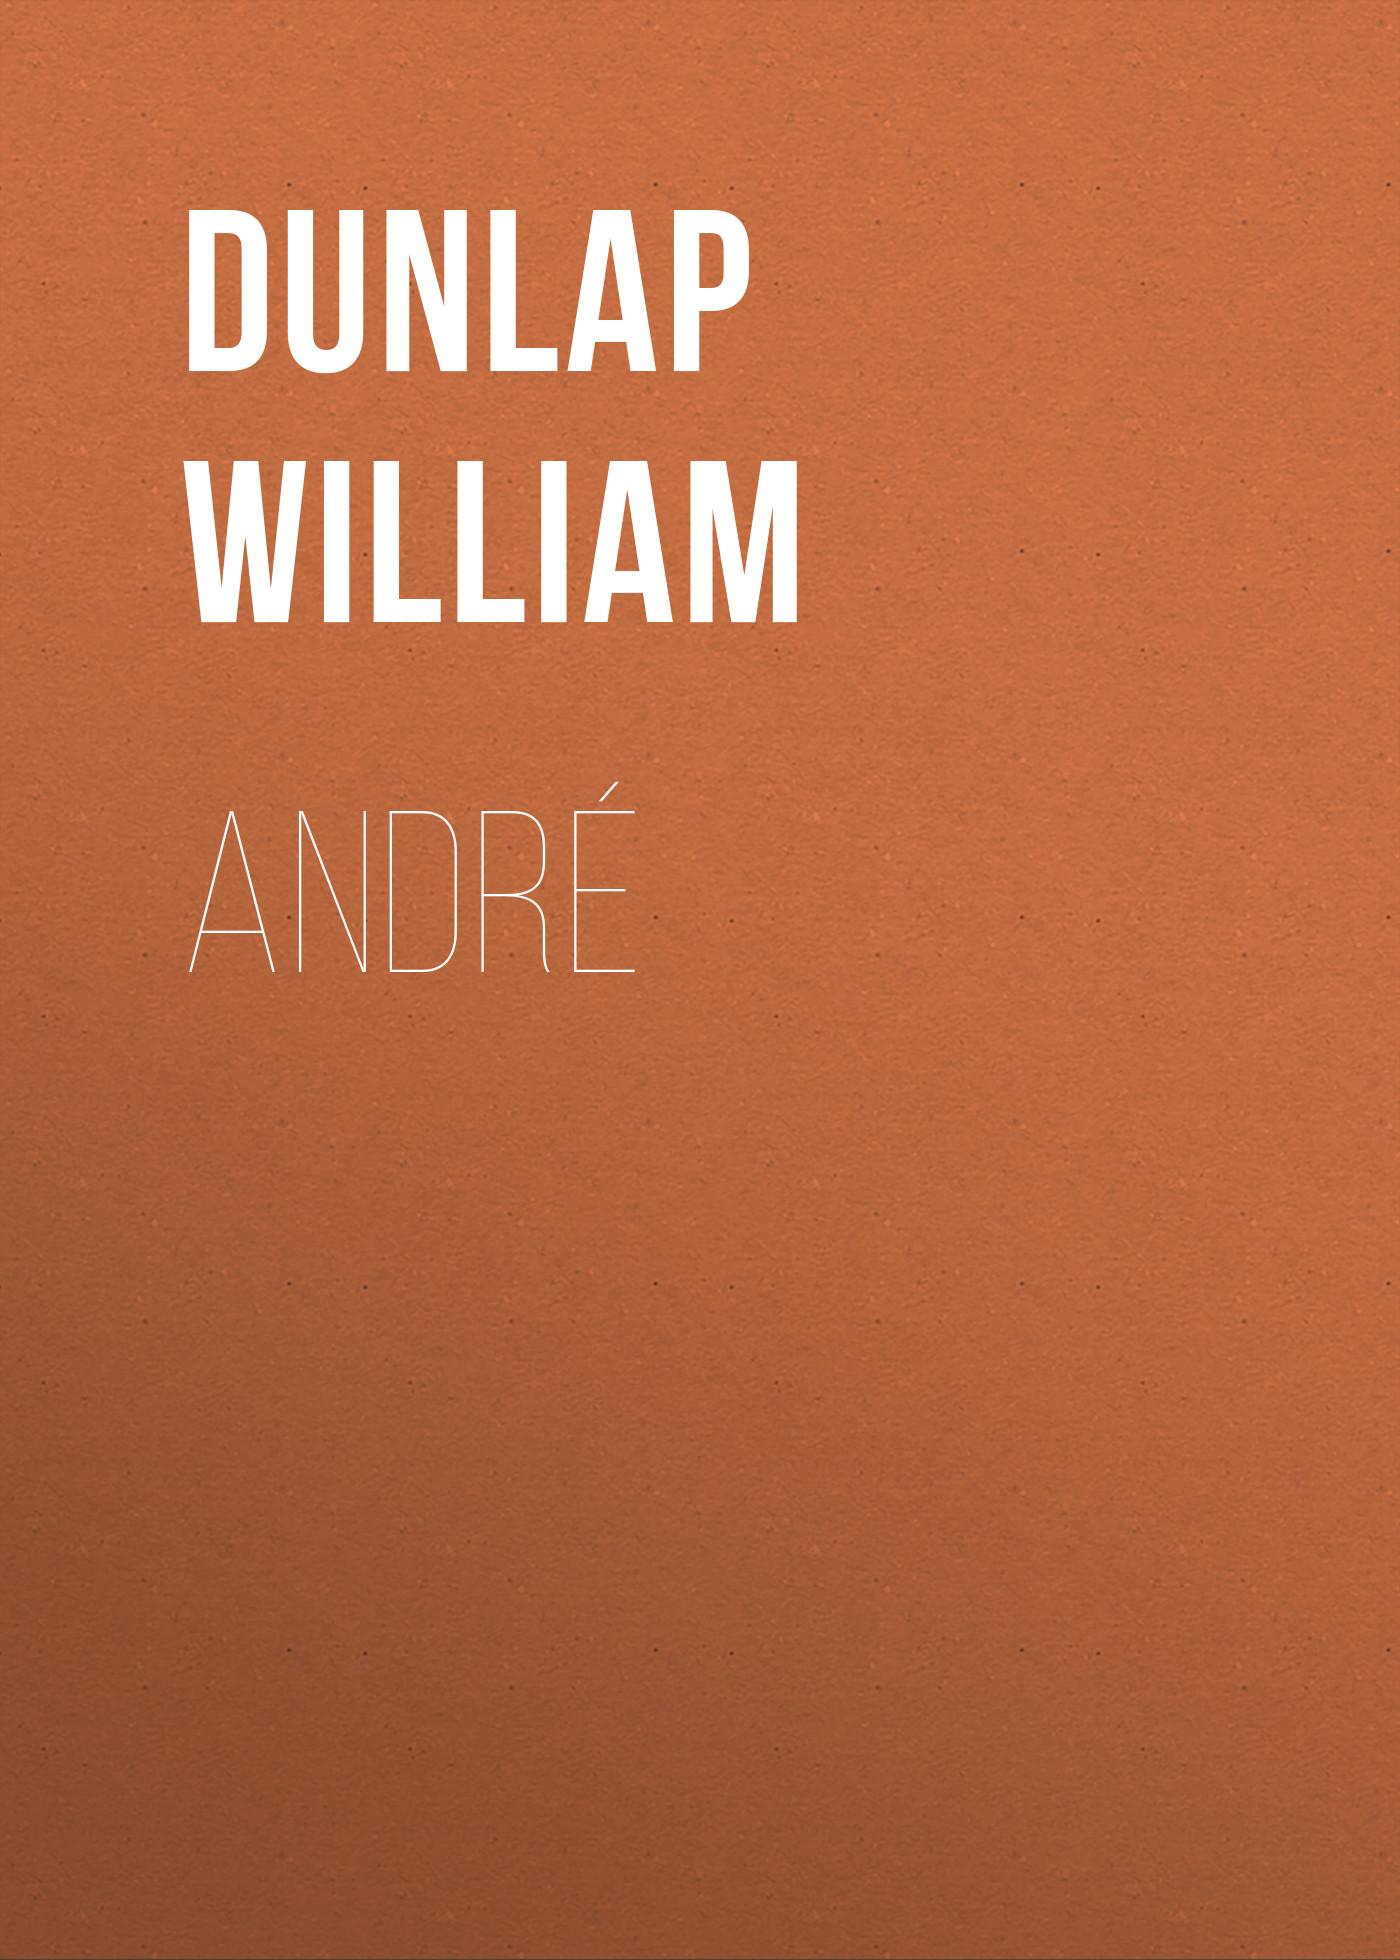 Dunlap William André andré hazes jr antwerp